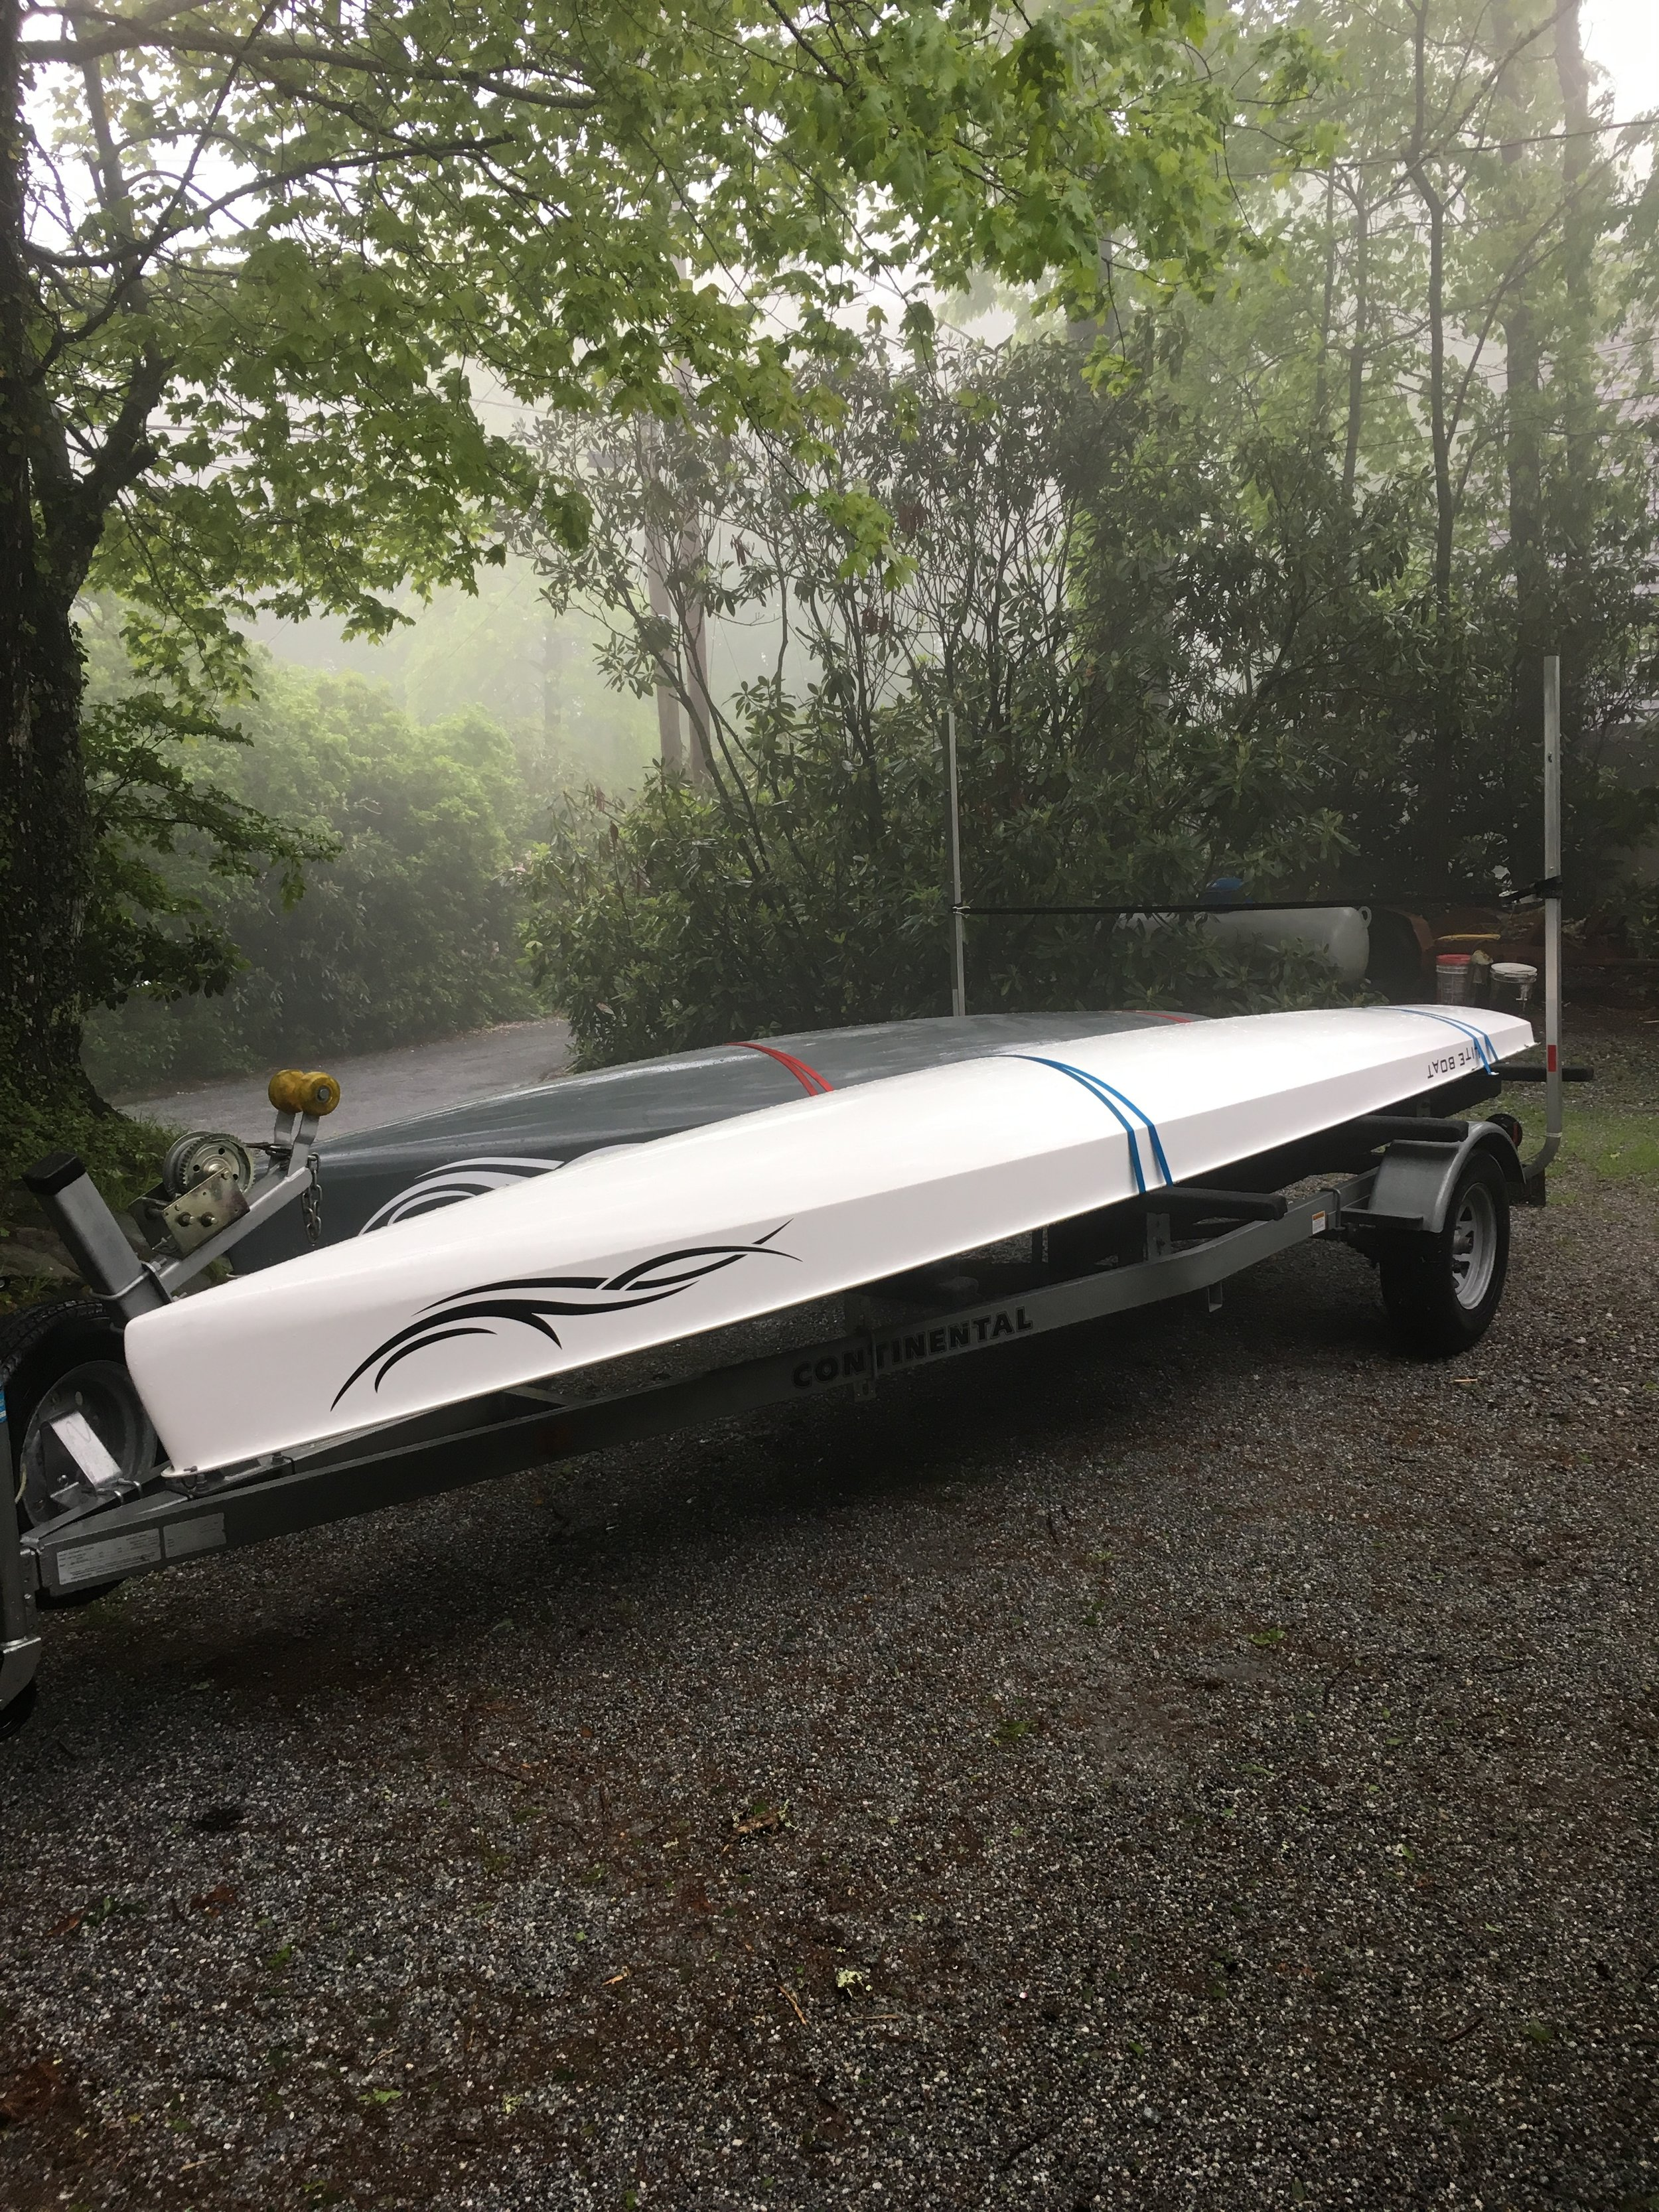 - Have trailer, will travel. We headed up to the N.C. Mountains to row on some beautiful mountain lakes. LiteBoats love travel and adventure!!